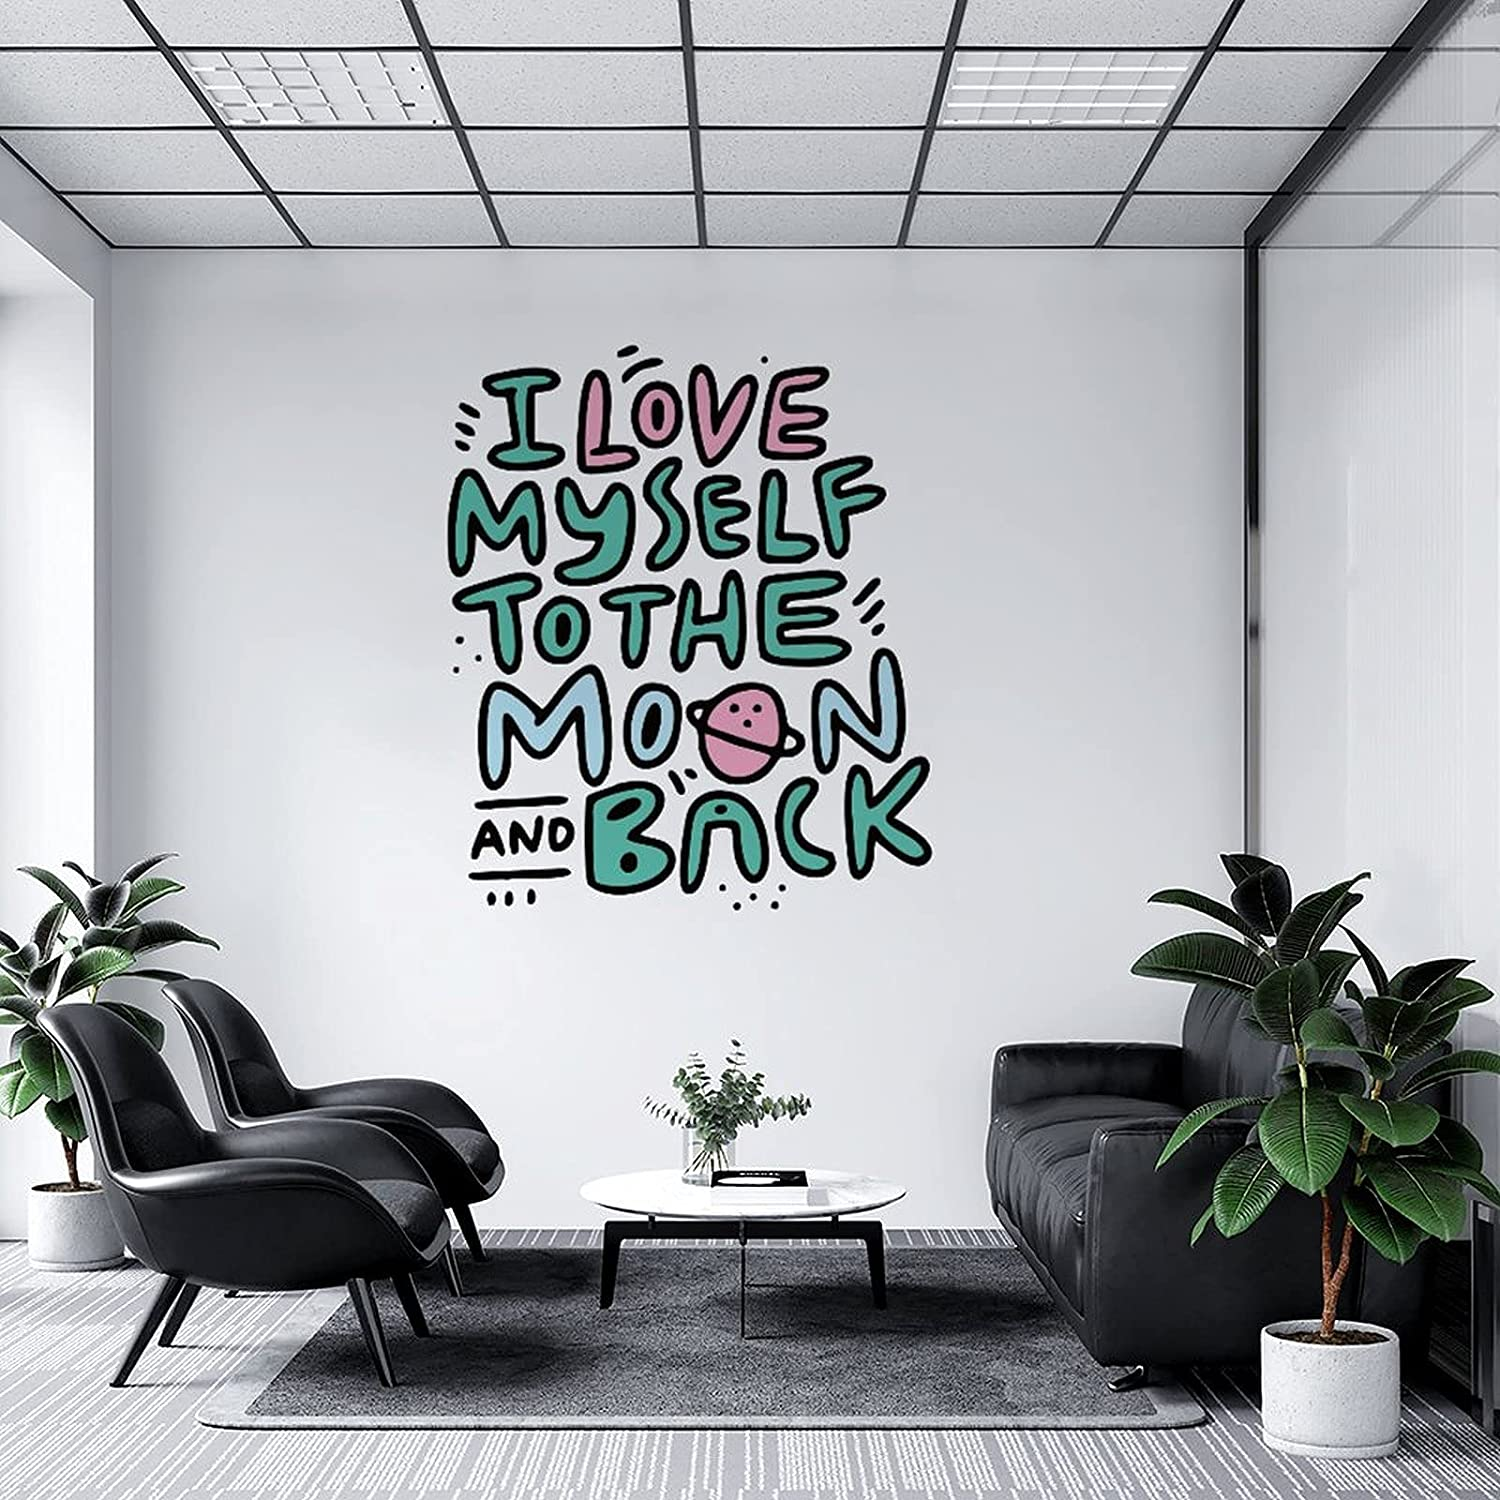 Wall Decal Louisville-Jefferson County Mall New color Ilovemyselftothemoon-Back DIY Murals Gi for Art